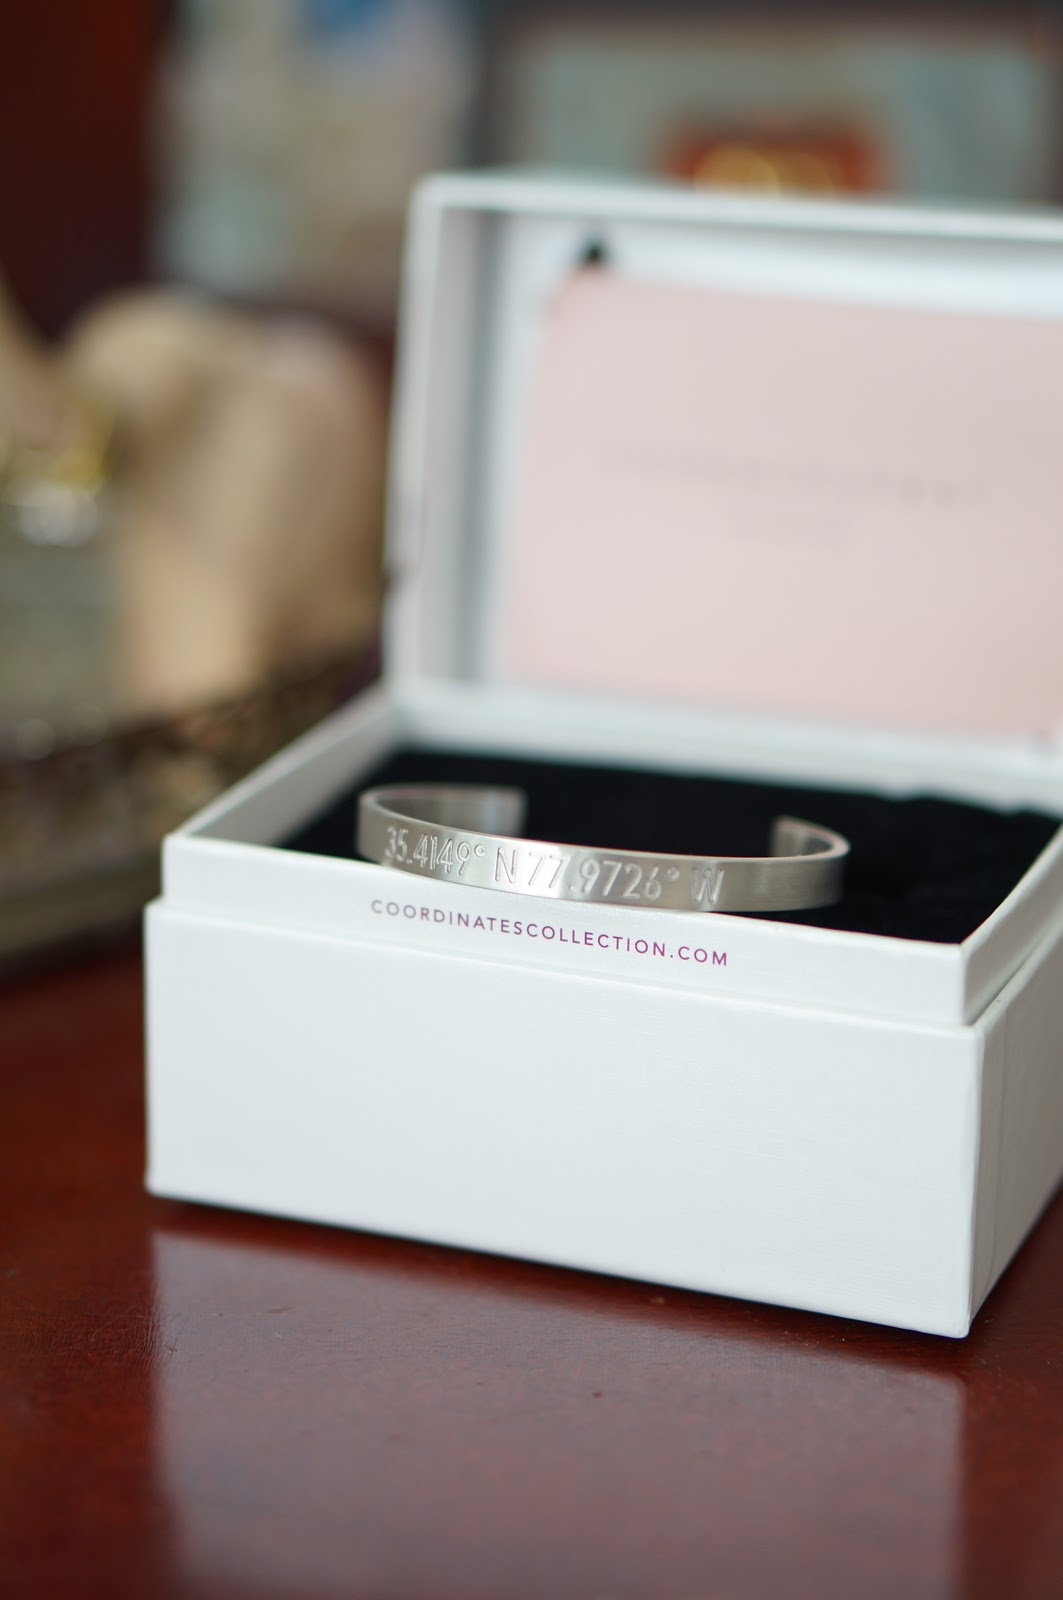 Rebecca Lately Coordinates Collection Legend Bracelet